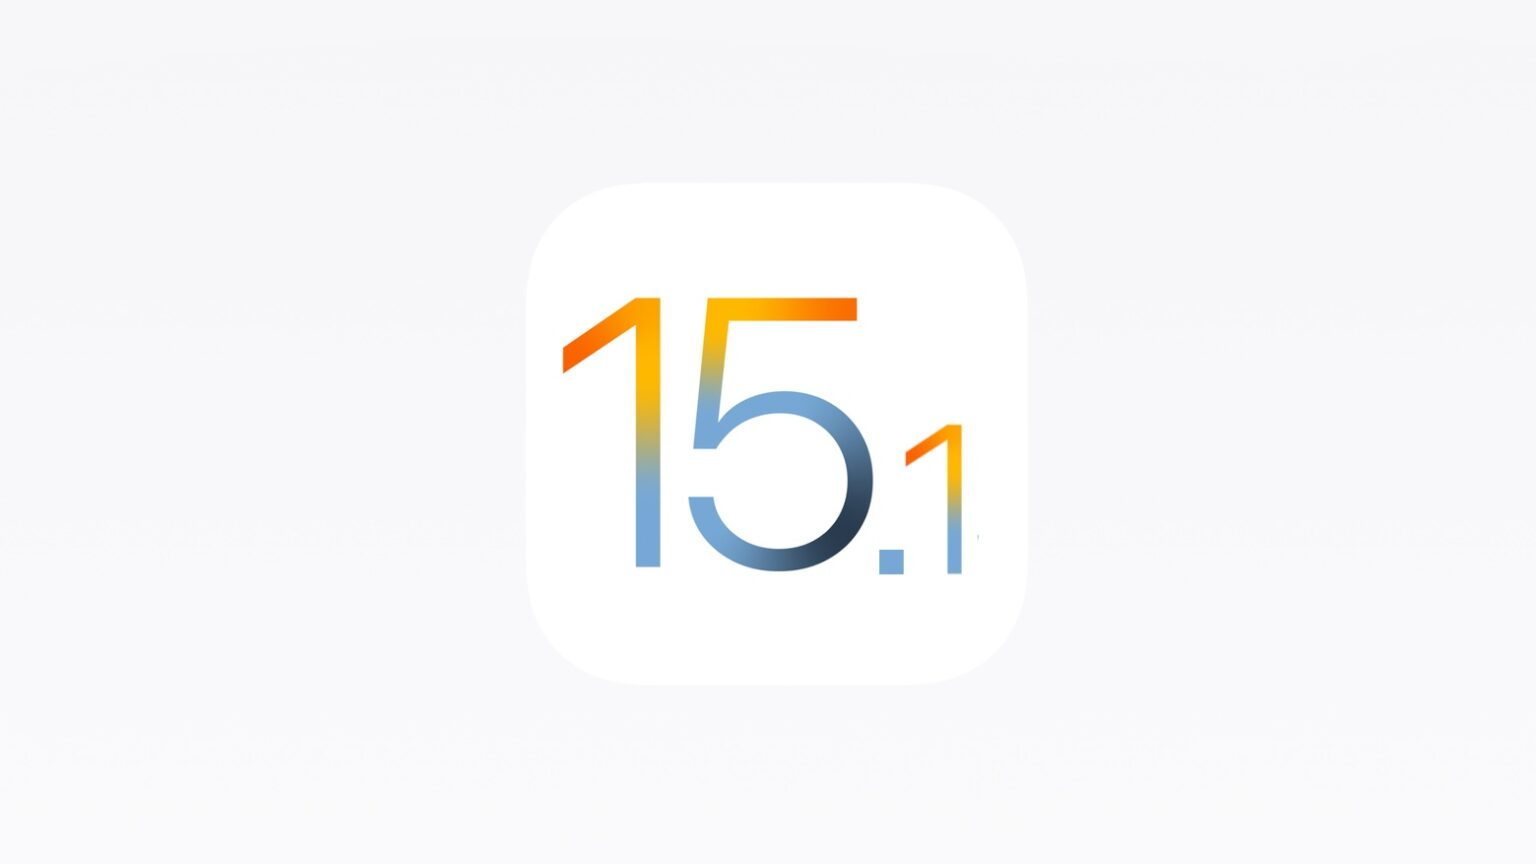 Don't install the iOS 15.1 beta if you plan to get an iPhone 13 ASAP